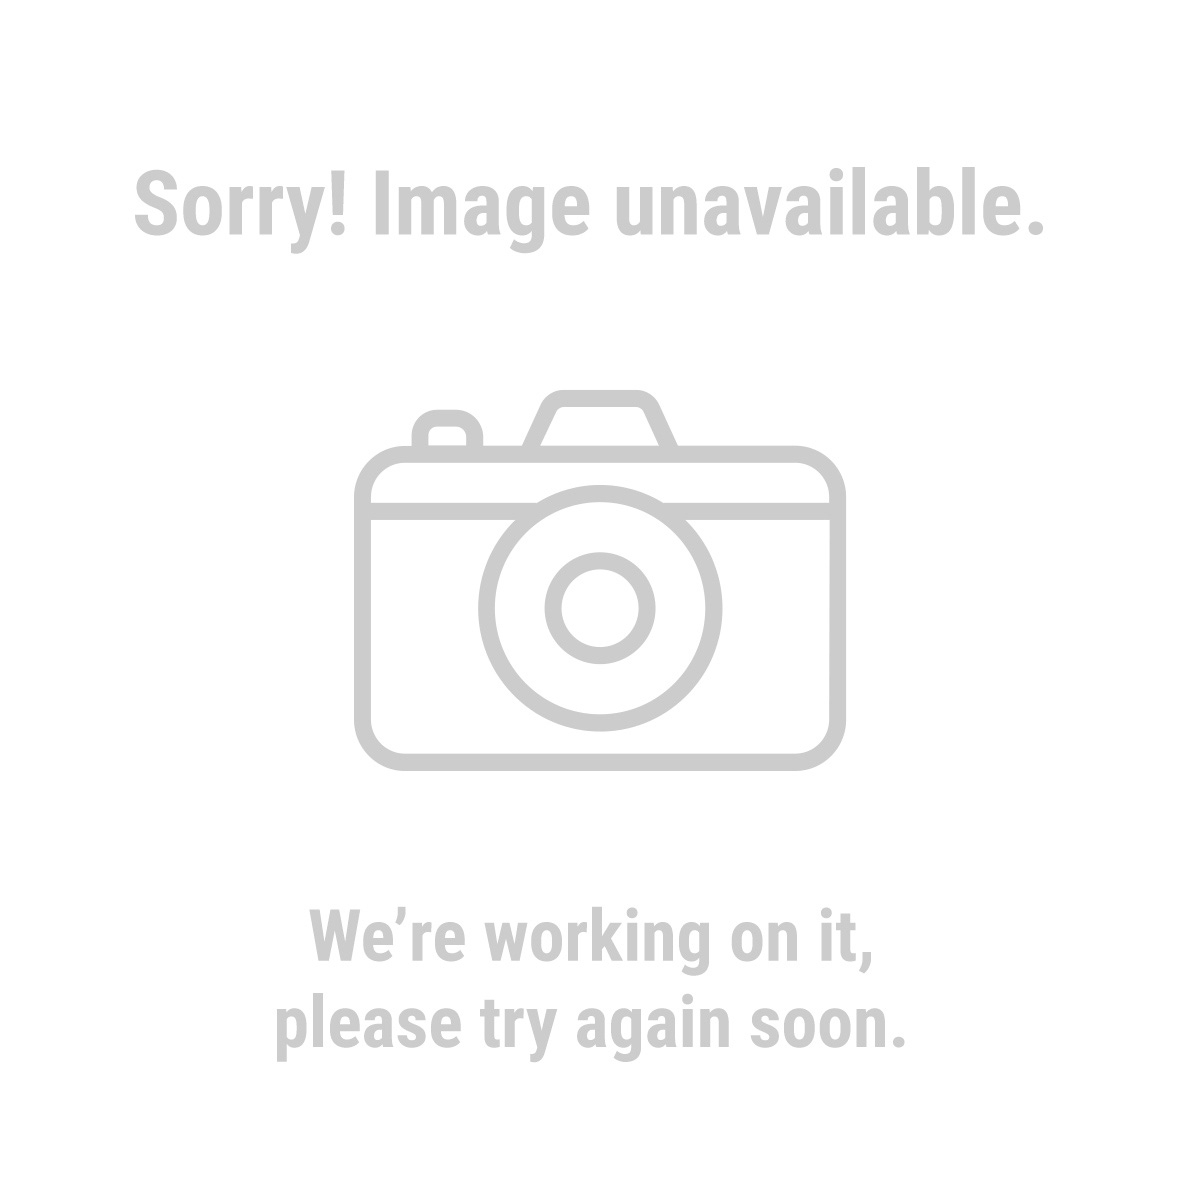 Pittsburgh 93667 15 Piece SAE Service Wrench Set